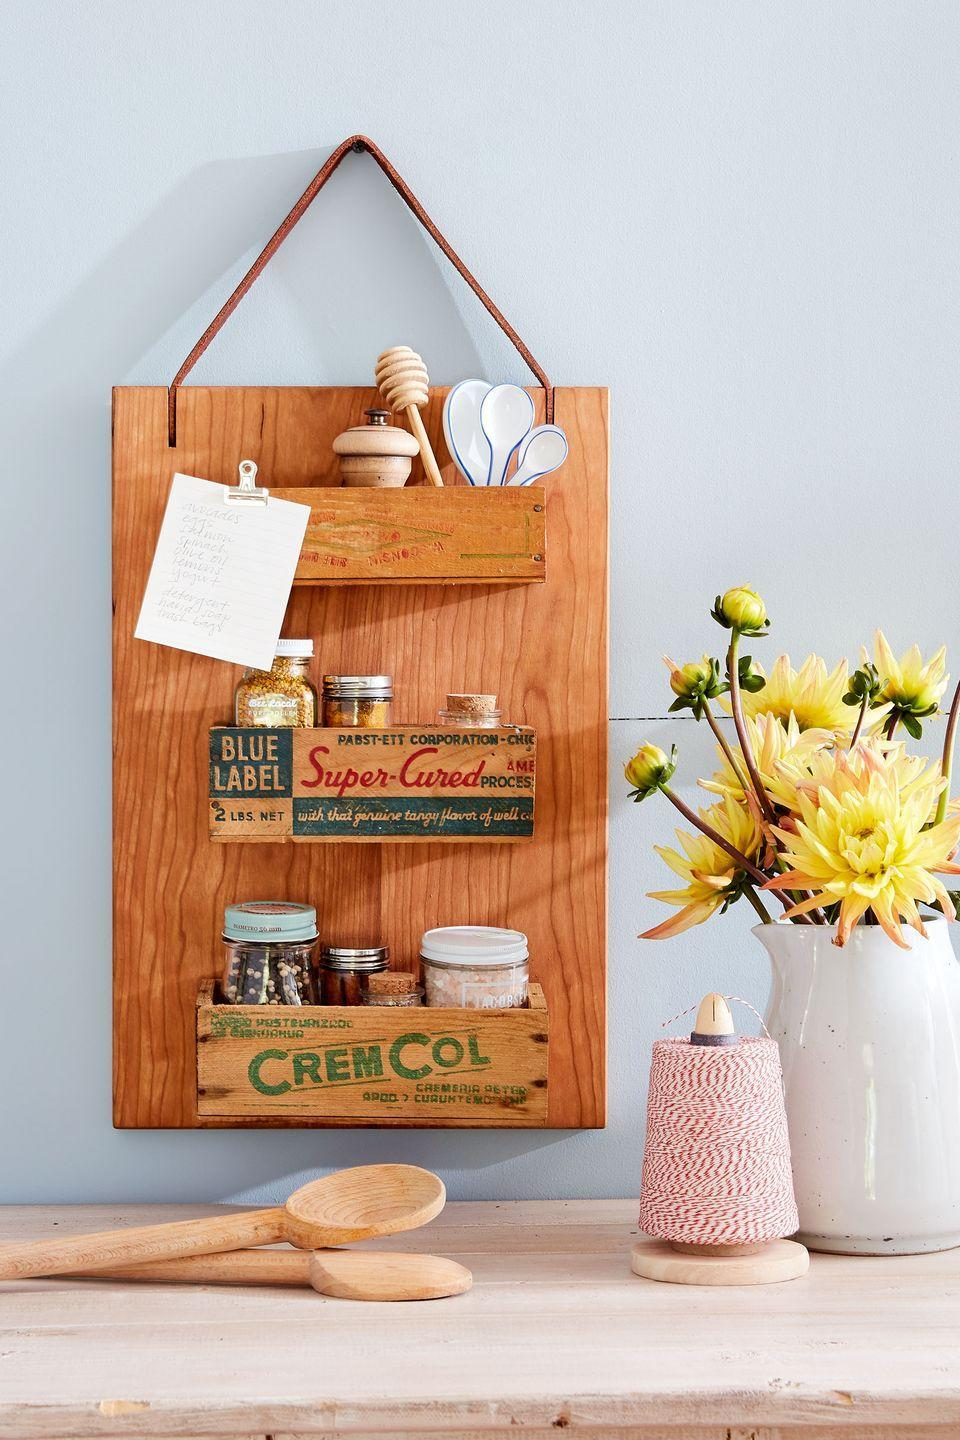 """<p>Repurpose an old cutting board by using screws to attach small <a href=""""https://go.redirectingat.com?id=74968X1596630&url=https%3A%2F%2Fwww.etsy.com%2Fsearch%3Fq%3Dwooden%2Bcheese%2Bbox&sref=https%3A%2F%2Fwww.countryliving.com%2Fdiy-crafts%2Ftips%2Fg645%2Fcrafty-christmas-presents-ideas%2F"""" rel=""""nofollow noopener"""" target=""""_blank"""" data-ylk=""""slk:wooden cheese boxes"""" class=""""link rapid-noclick-resp"""">wooden cheese boxes</a> to a rectangular cutting board. Then add a leather strap for hanging. </p><p><strong><a class=""""link rapid-noclick-resp"""" href=""""https://go.redirectingat.com?id=74968X1596630&url=https%3A%2F%2Fwww.etsy.com%2Fsearch%3Fq%3Dwooden%2Bcheese%2Bbox&sref=https%3A%2F%2Fwww.countryliving.com%2Fdiy-crafts%2Ftips%2Fg645%2Fcrafty-christmas-presents-ideas%2F"""" rel=""""nofollow noopener"""" target=""""_blank"""" data-ylk=""""slk:SHOP WOODEN BOXES"""">SHOP WOODEN BOXES</a></strong></p>"""